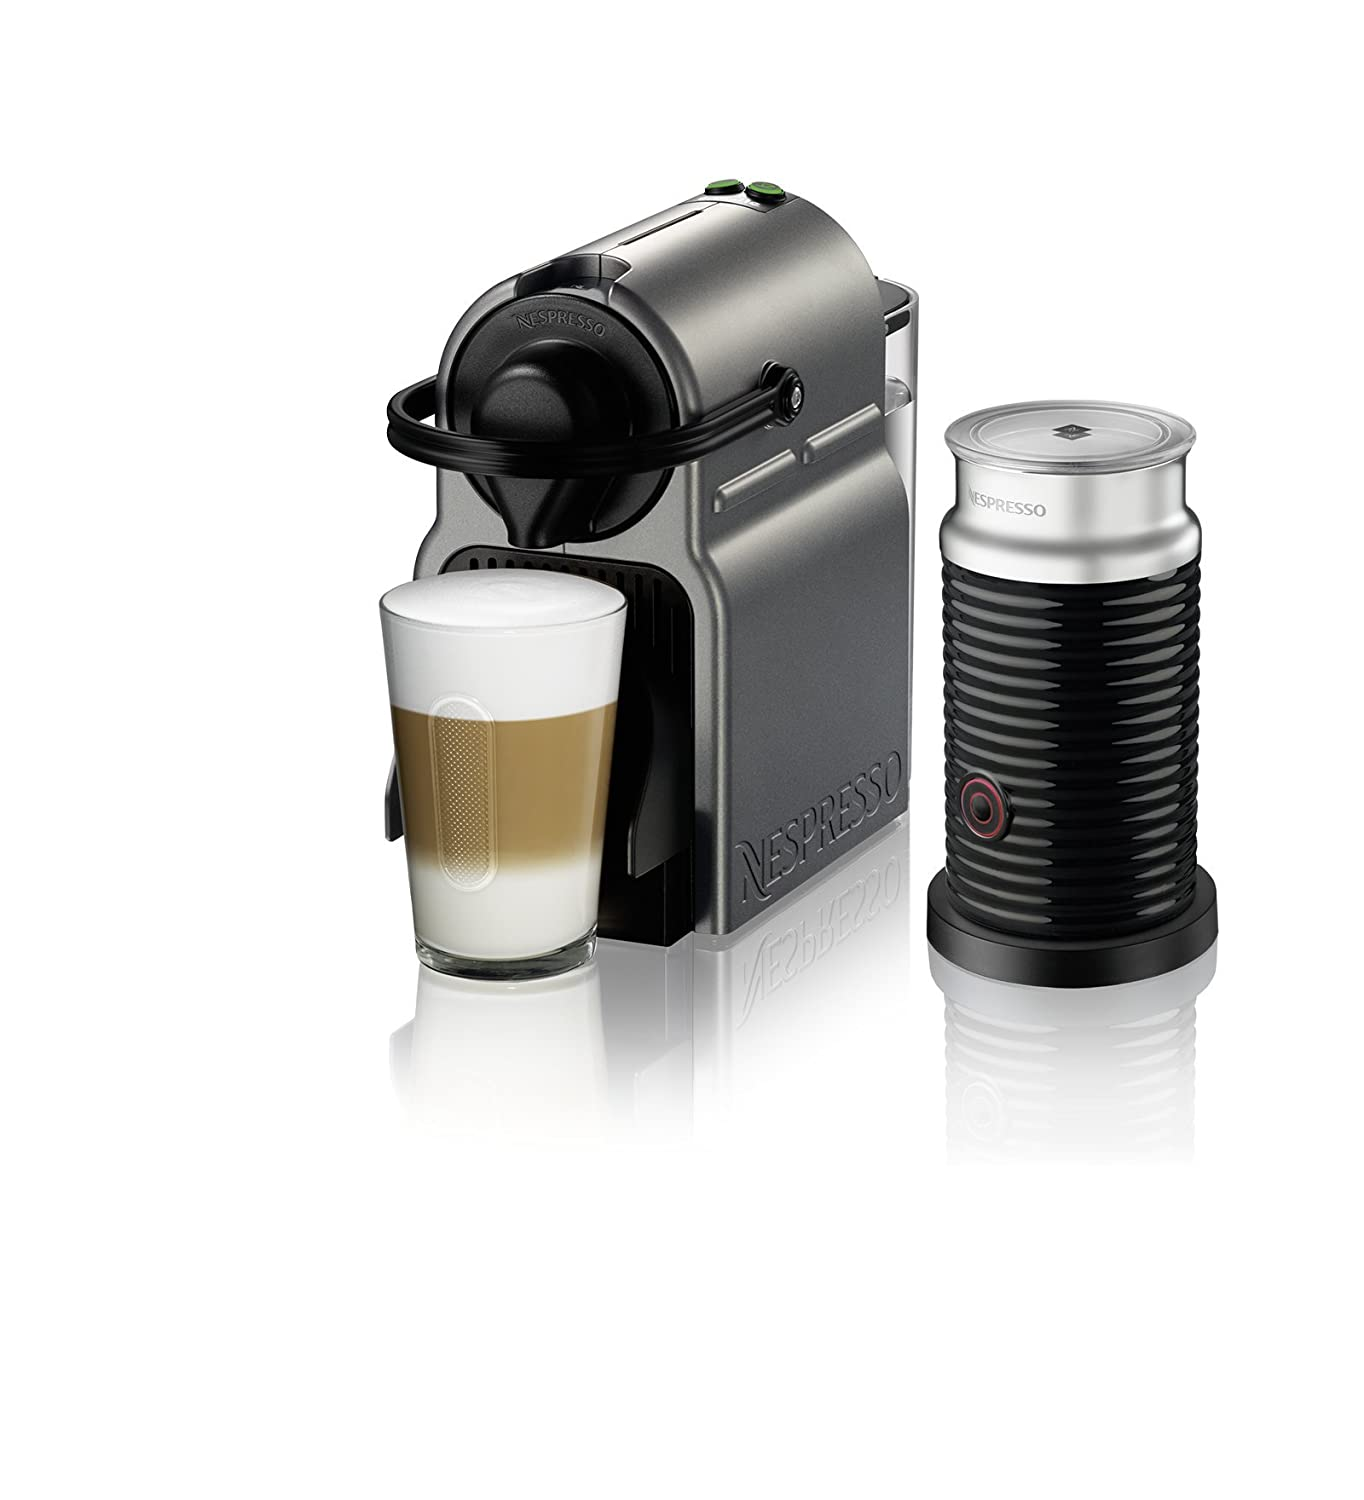 Nespresso Inissia Original Espresso Machine with Aeroccino Milk Frother Review 5